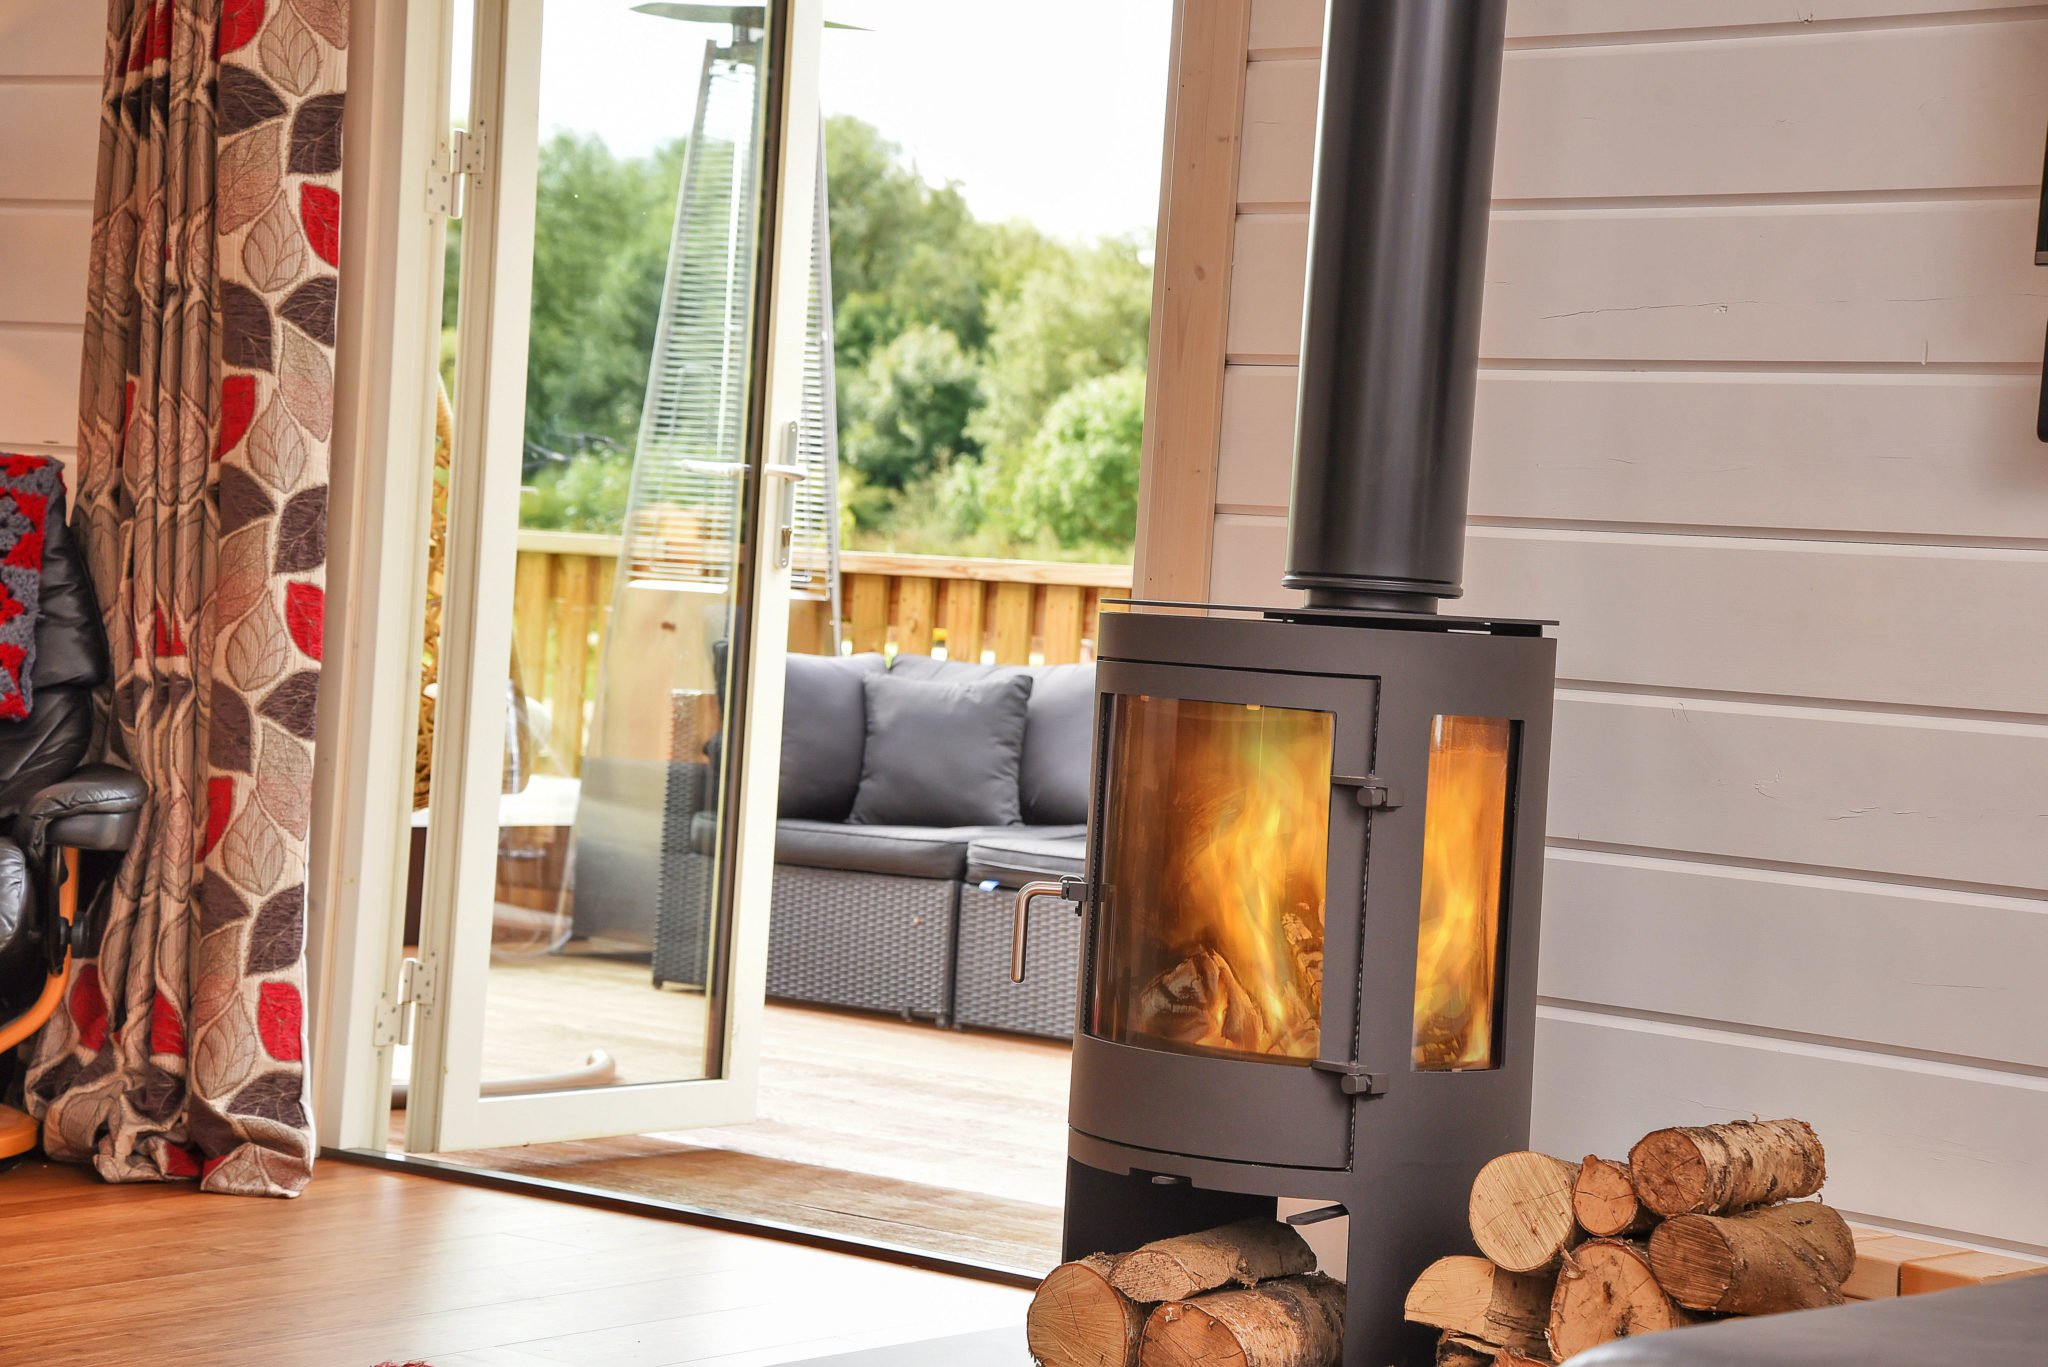 Log burner in log cabin